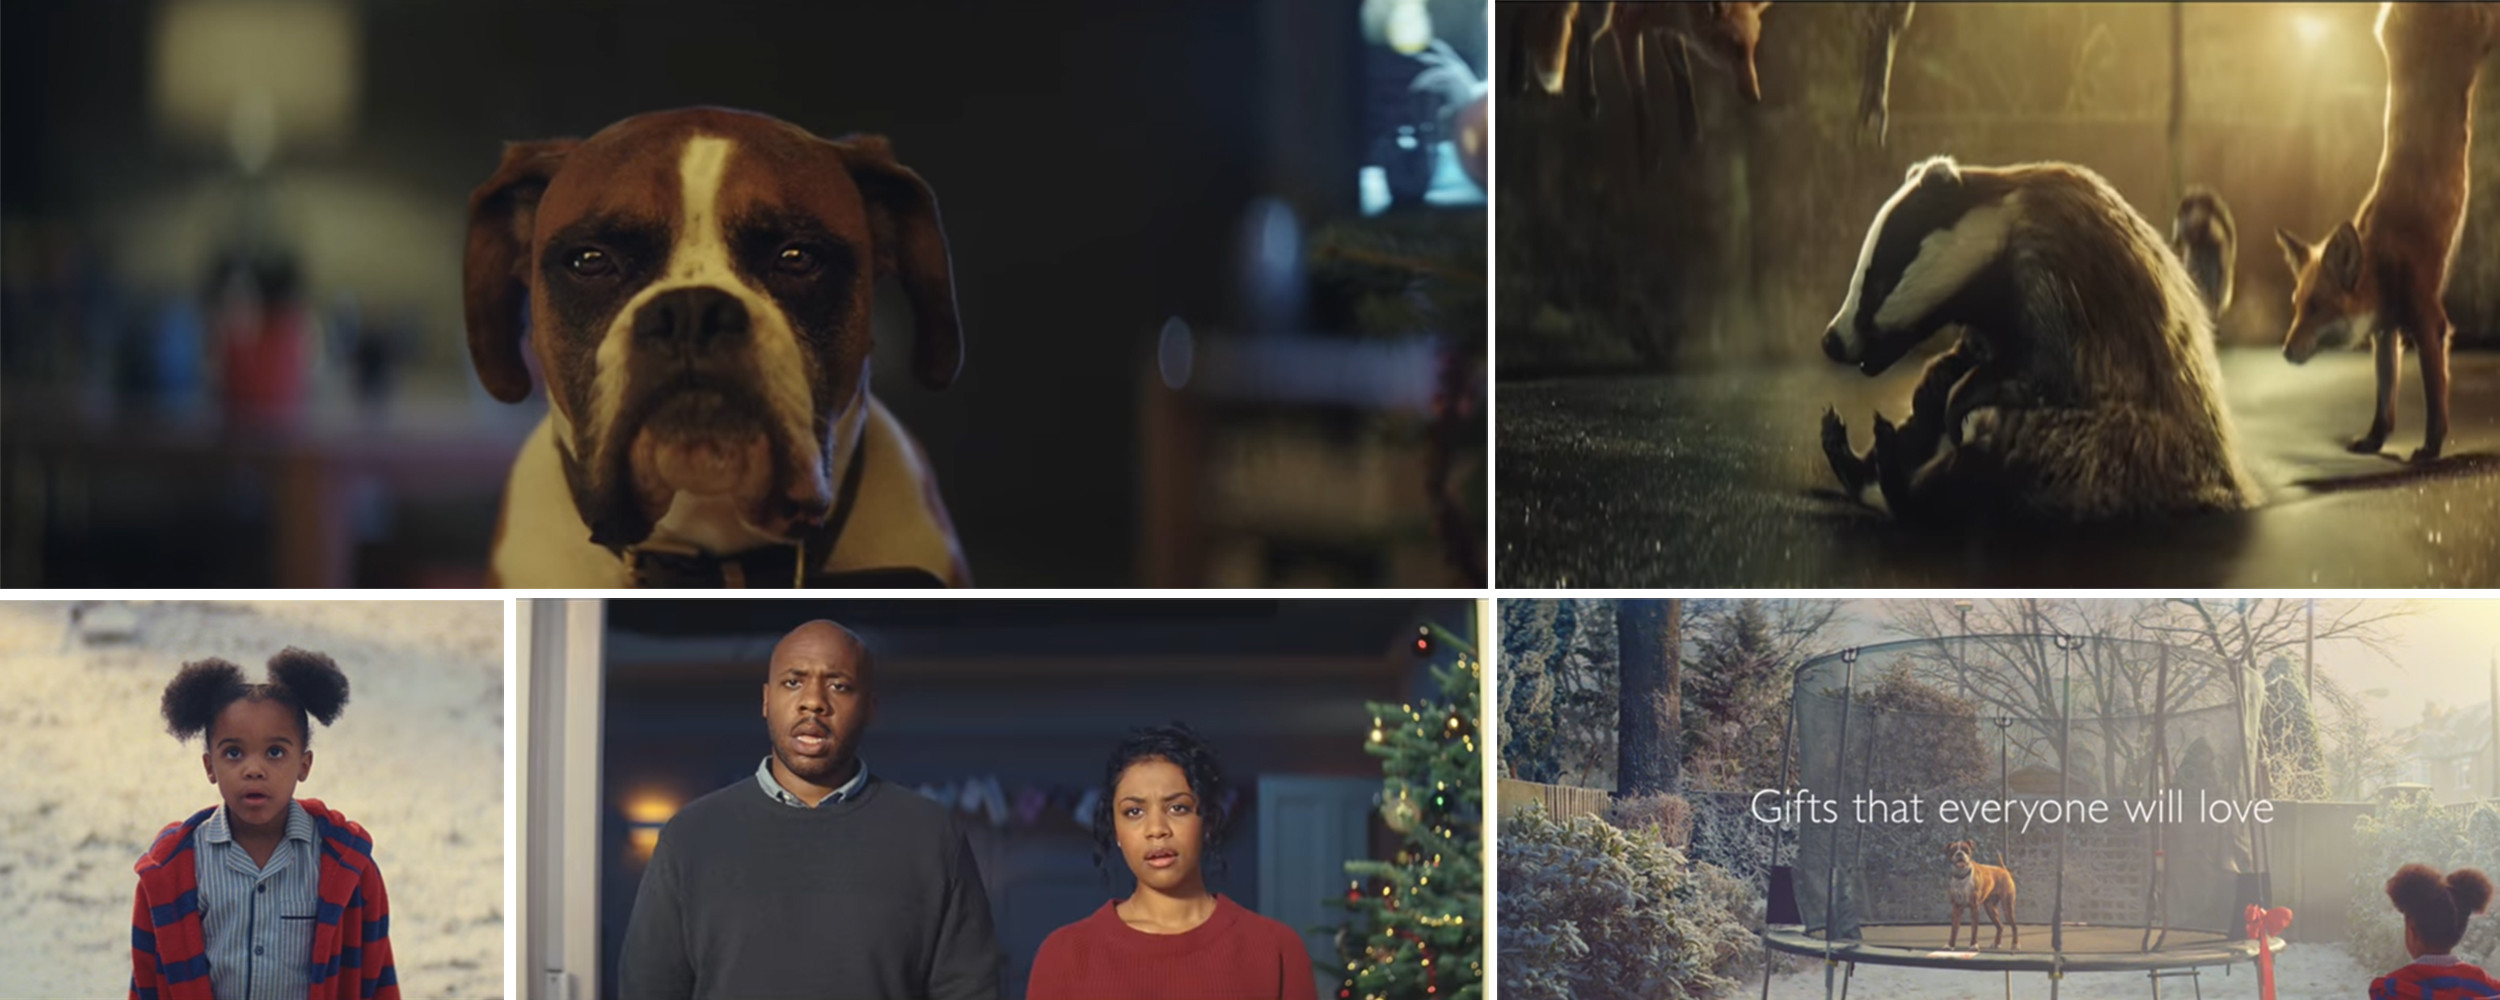 johnlewis com christmas advert analysis Typeface analysis suggests kevin the carrot may be aldi and not the john lewis christmas advert @metro_ents looks very much like aldi's font though.